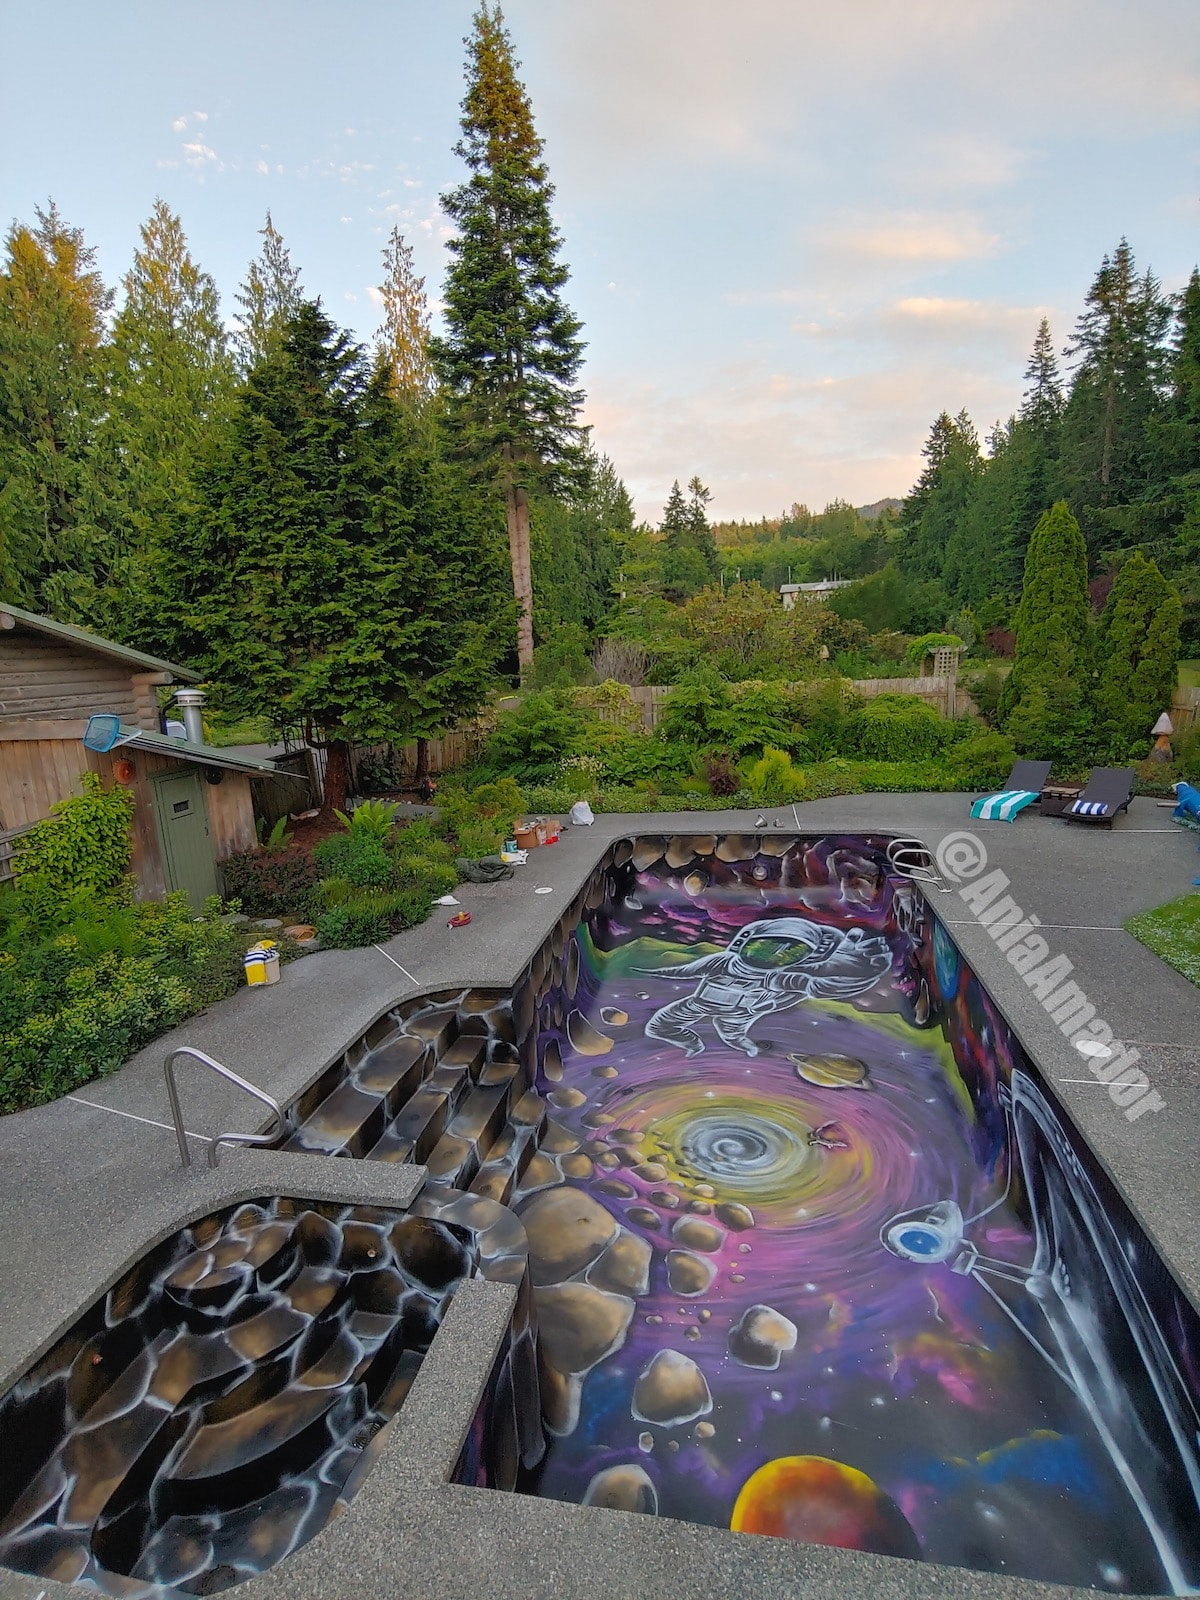 Swimming Pool Mural Transforms the Basin Into Outerspace